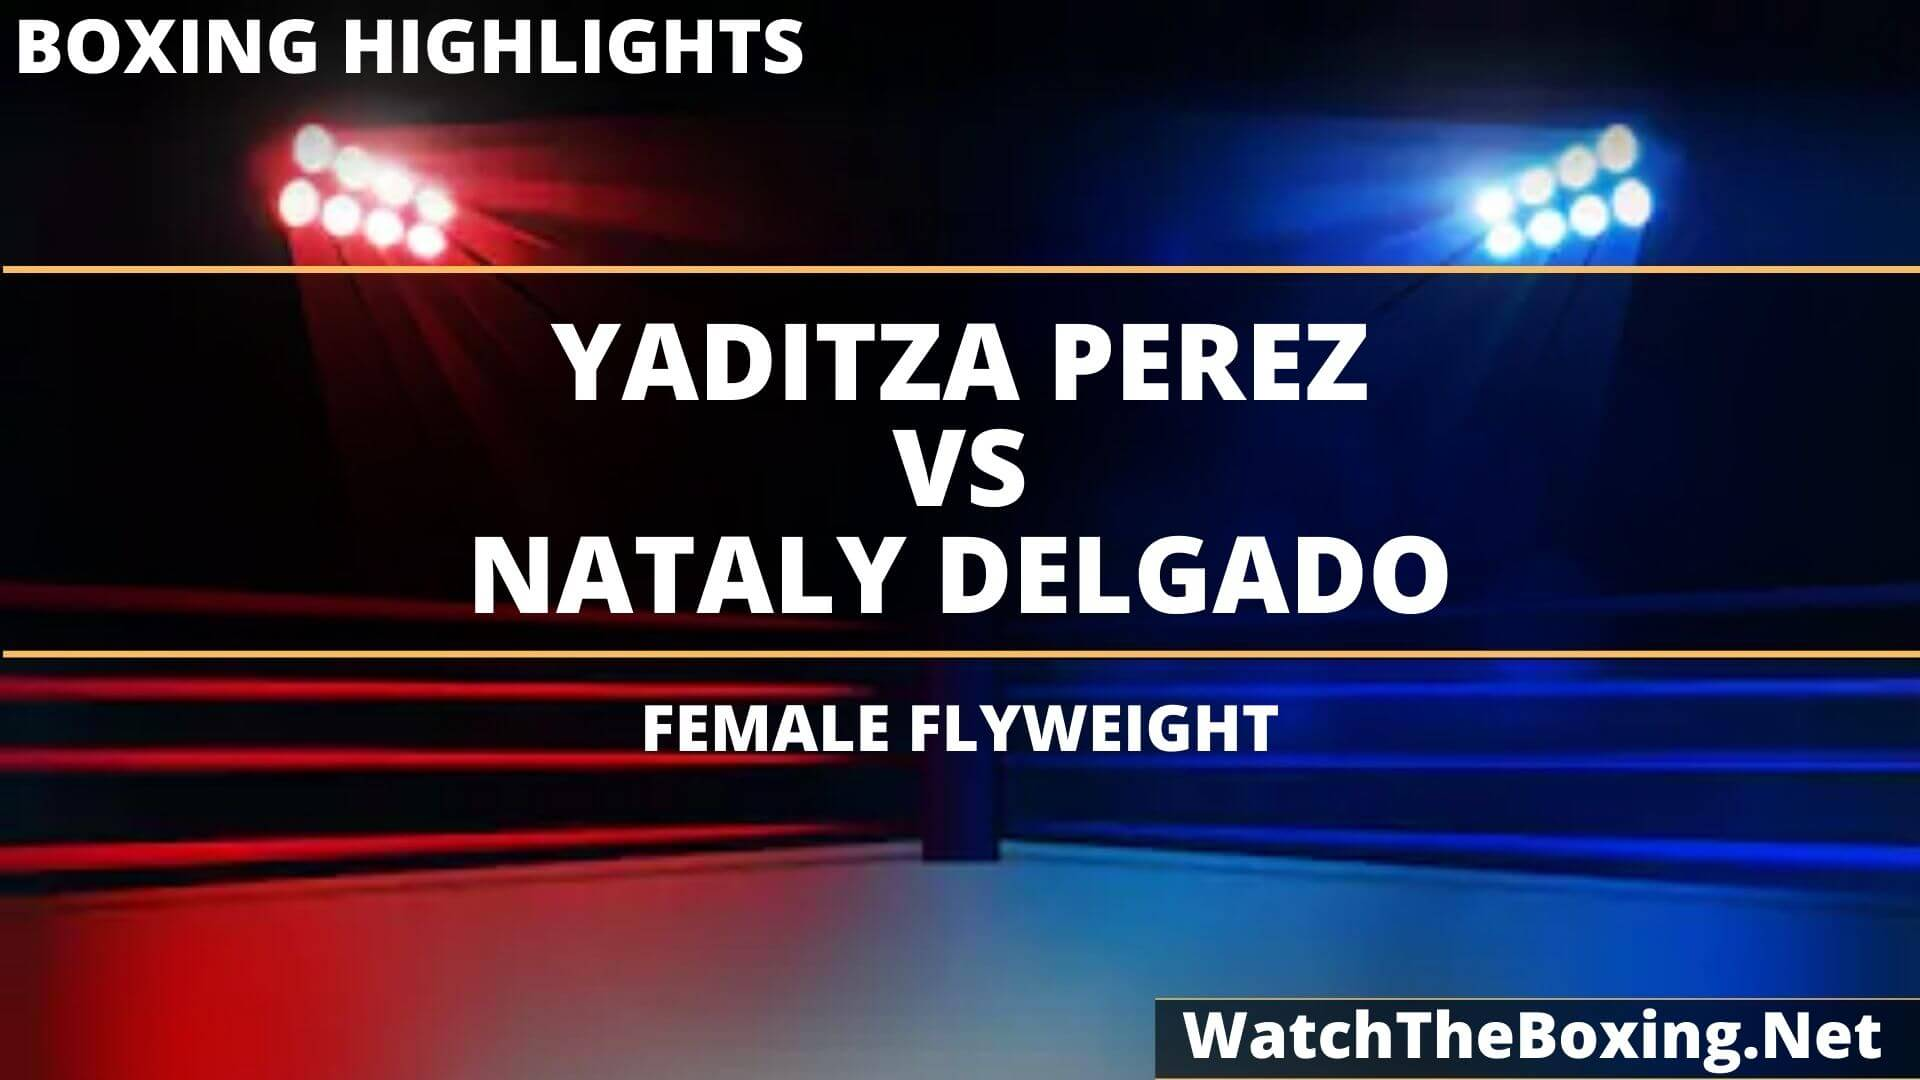 Yaditza Perez Vs Nataly Delgado Highlights 2020